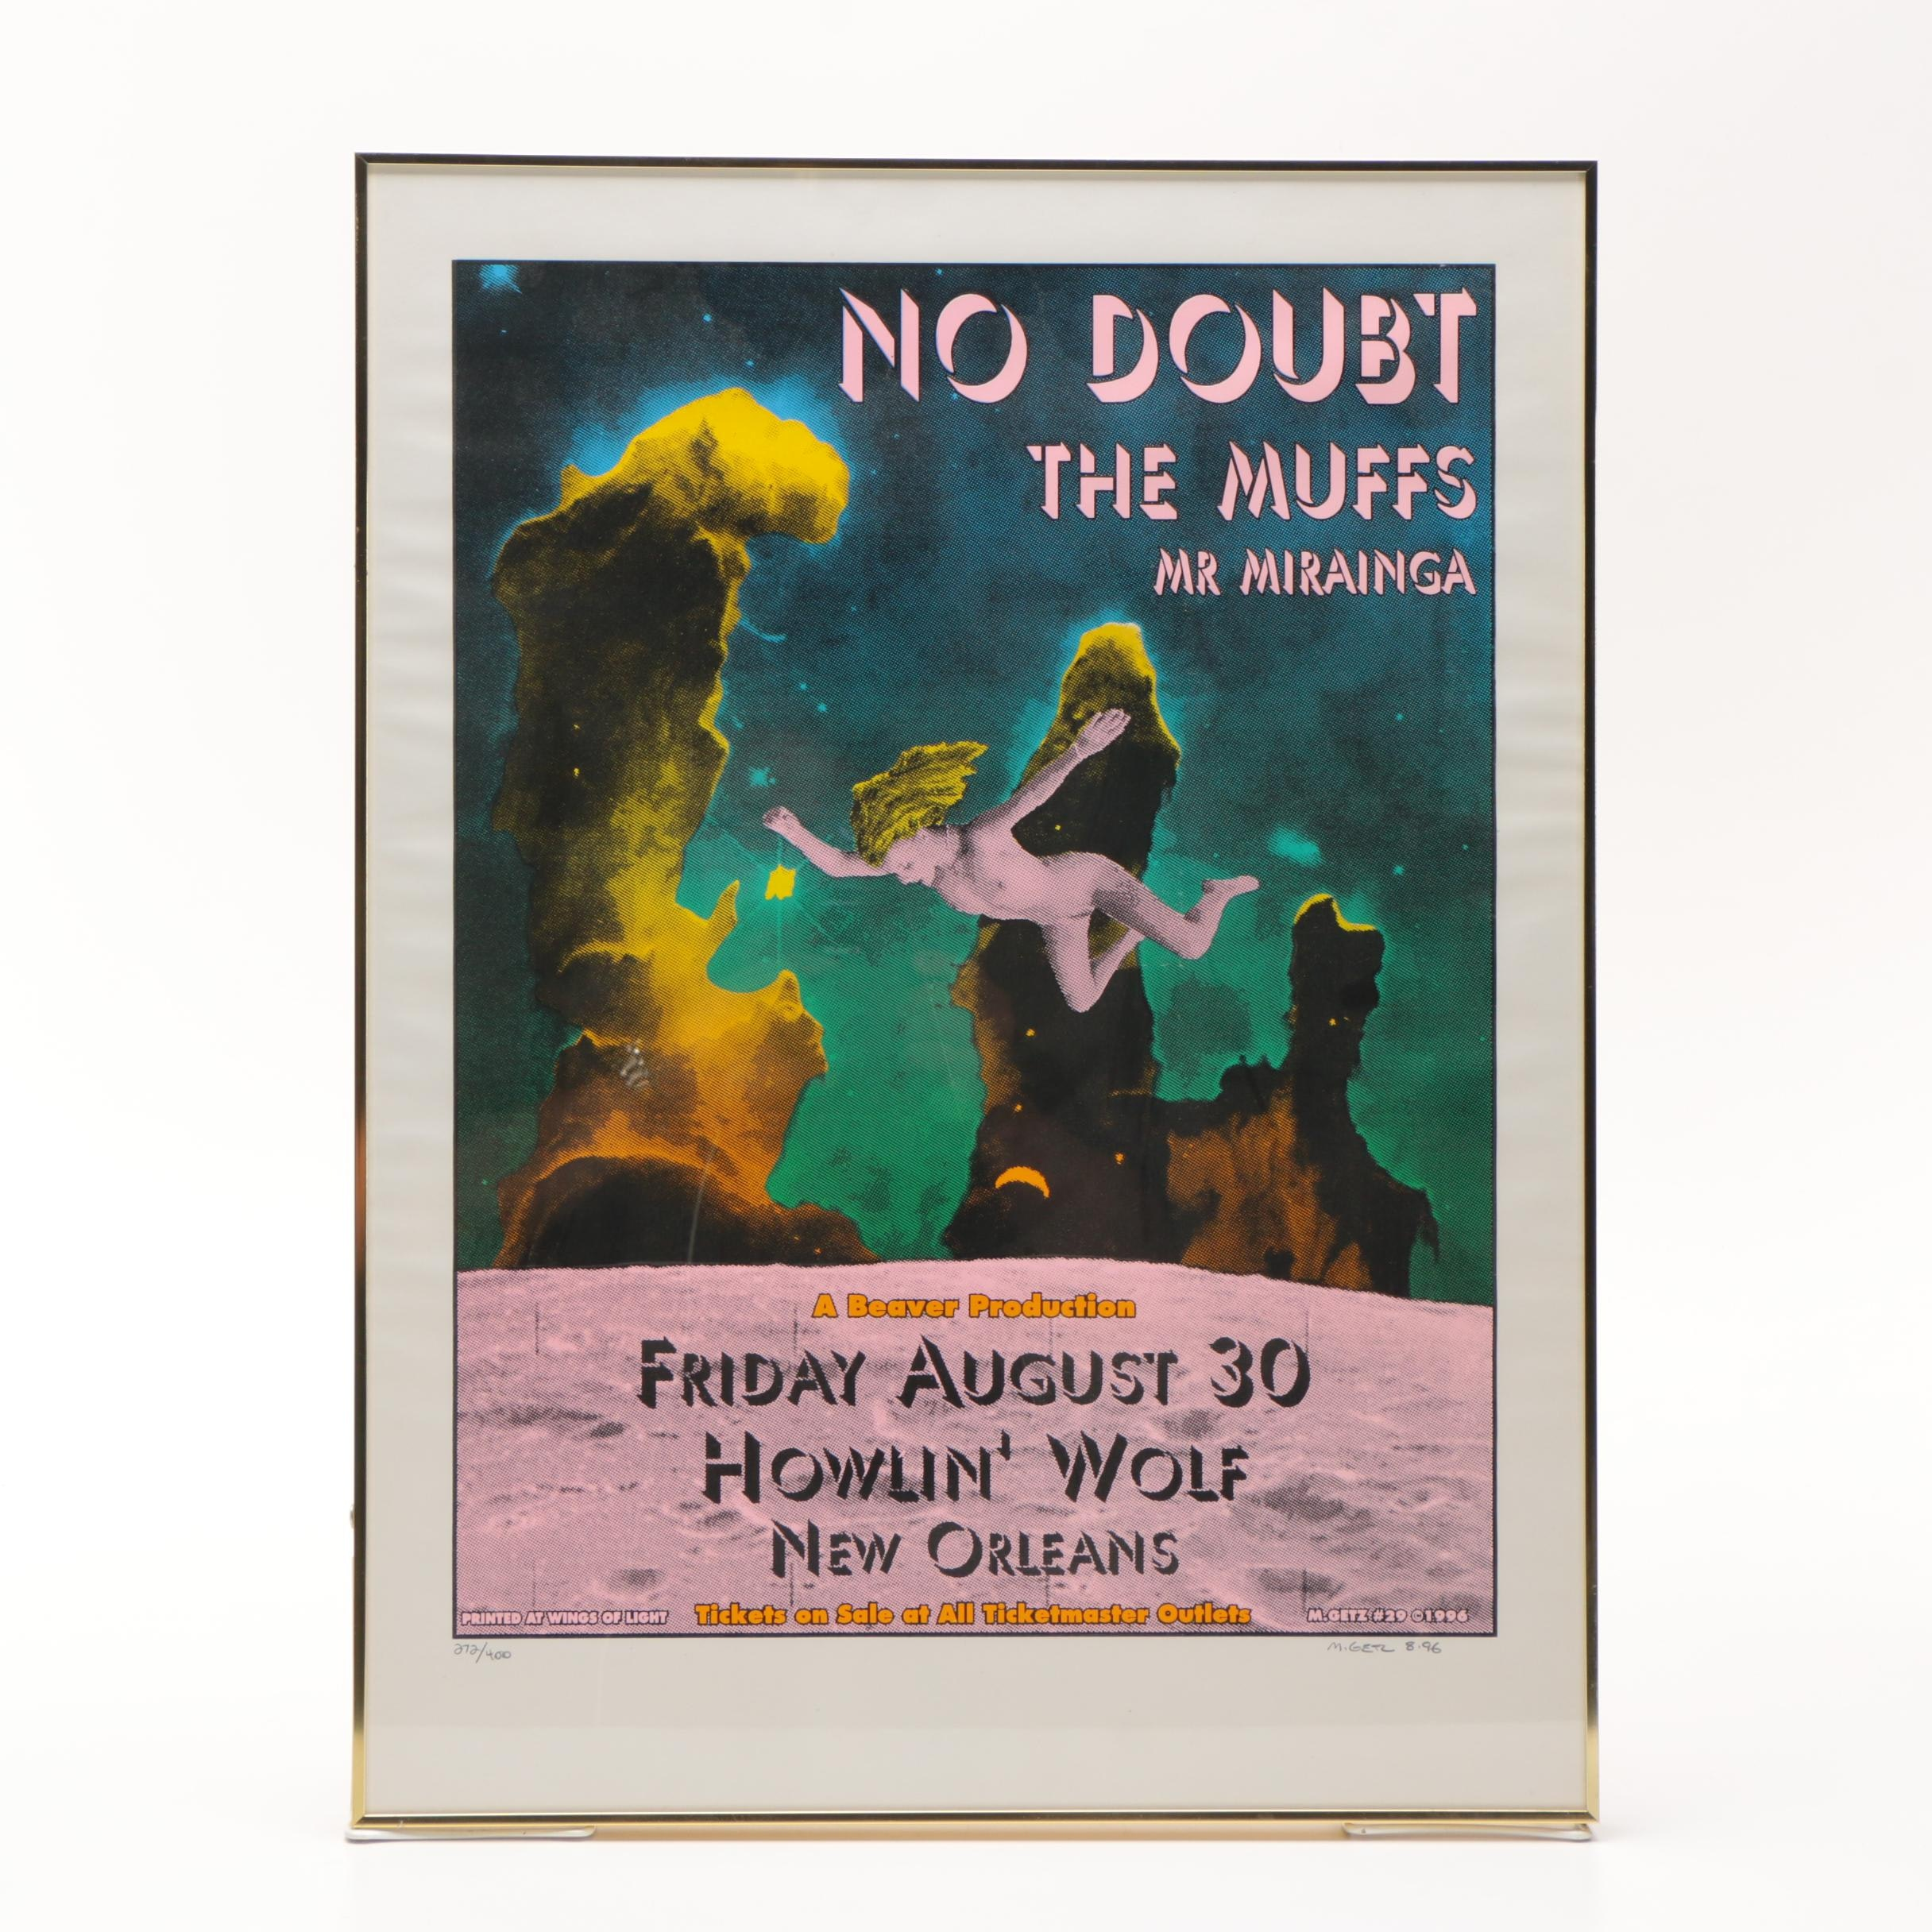 """Signed Limited Edition Serigraph Poster, Featuring """"No Doubt"""""""